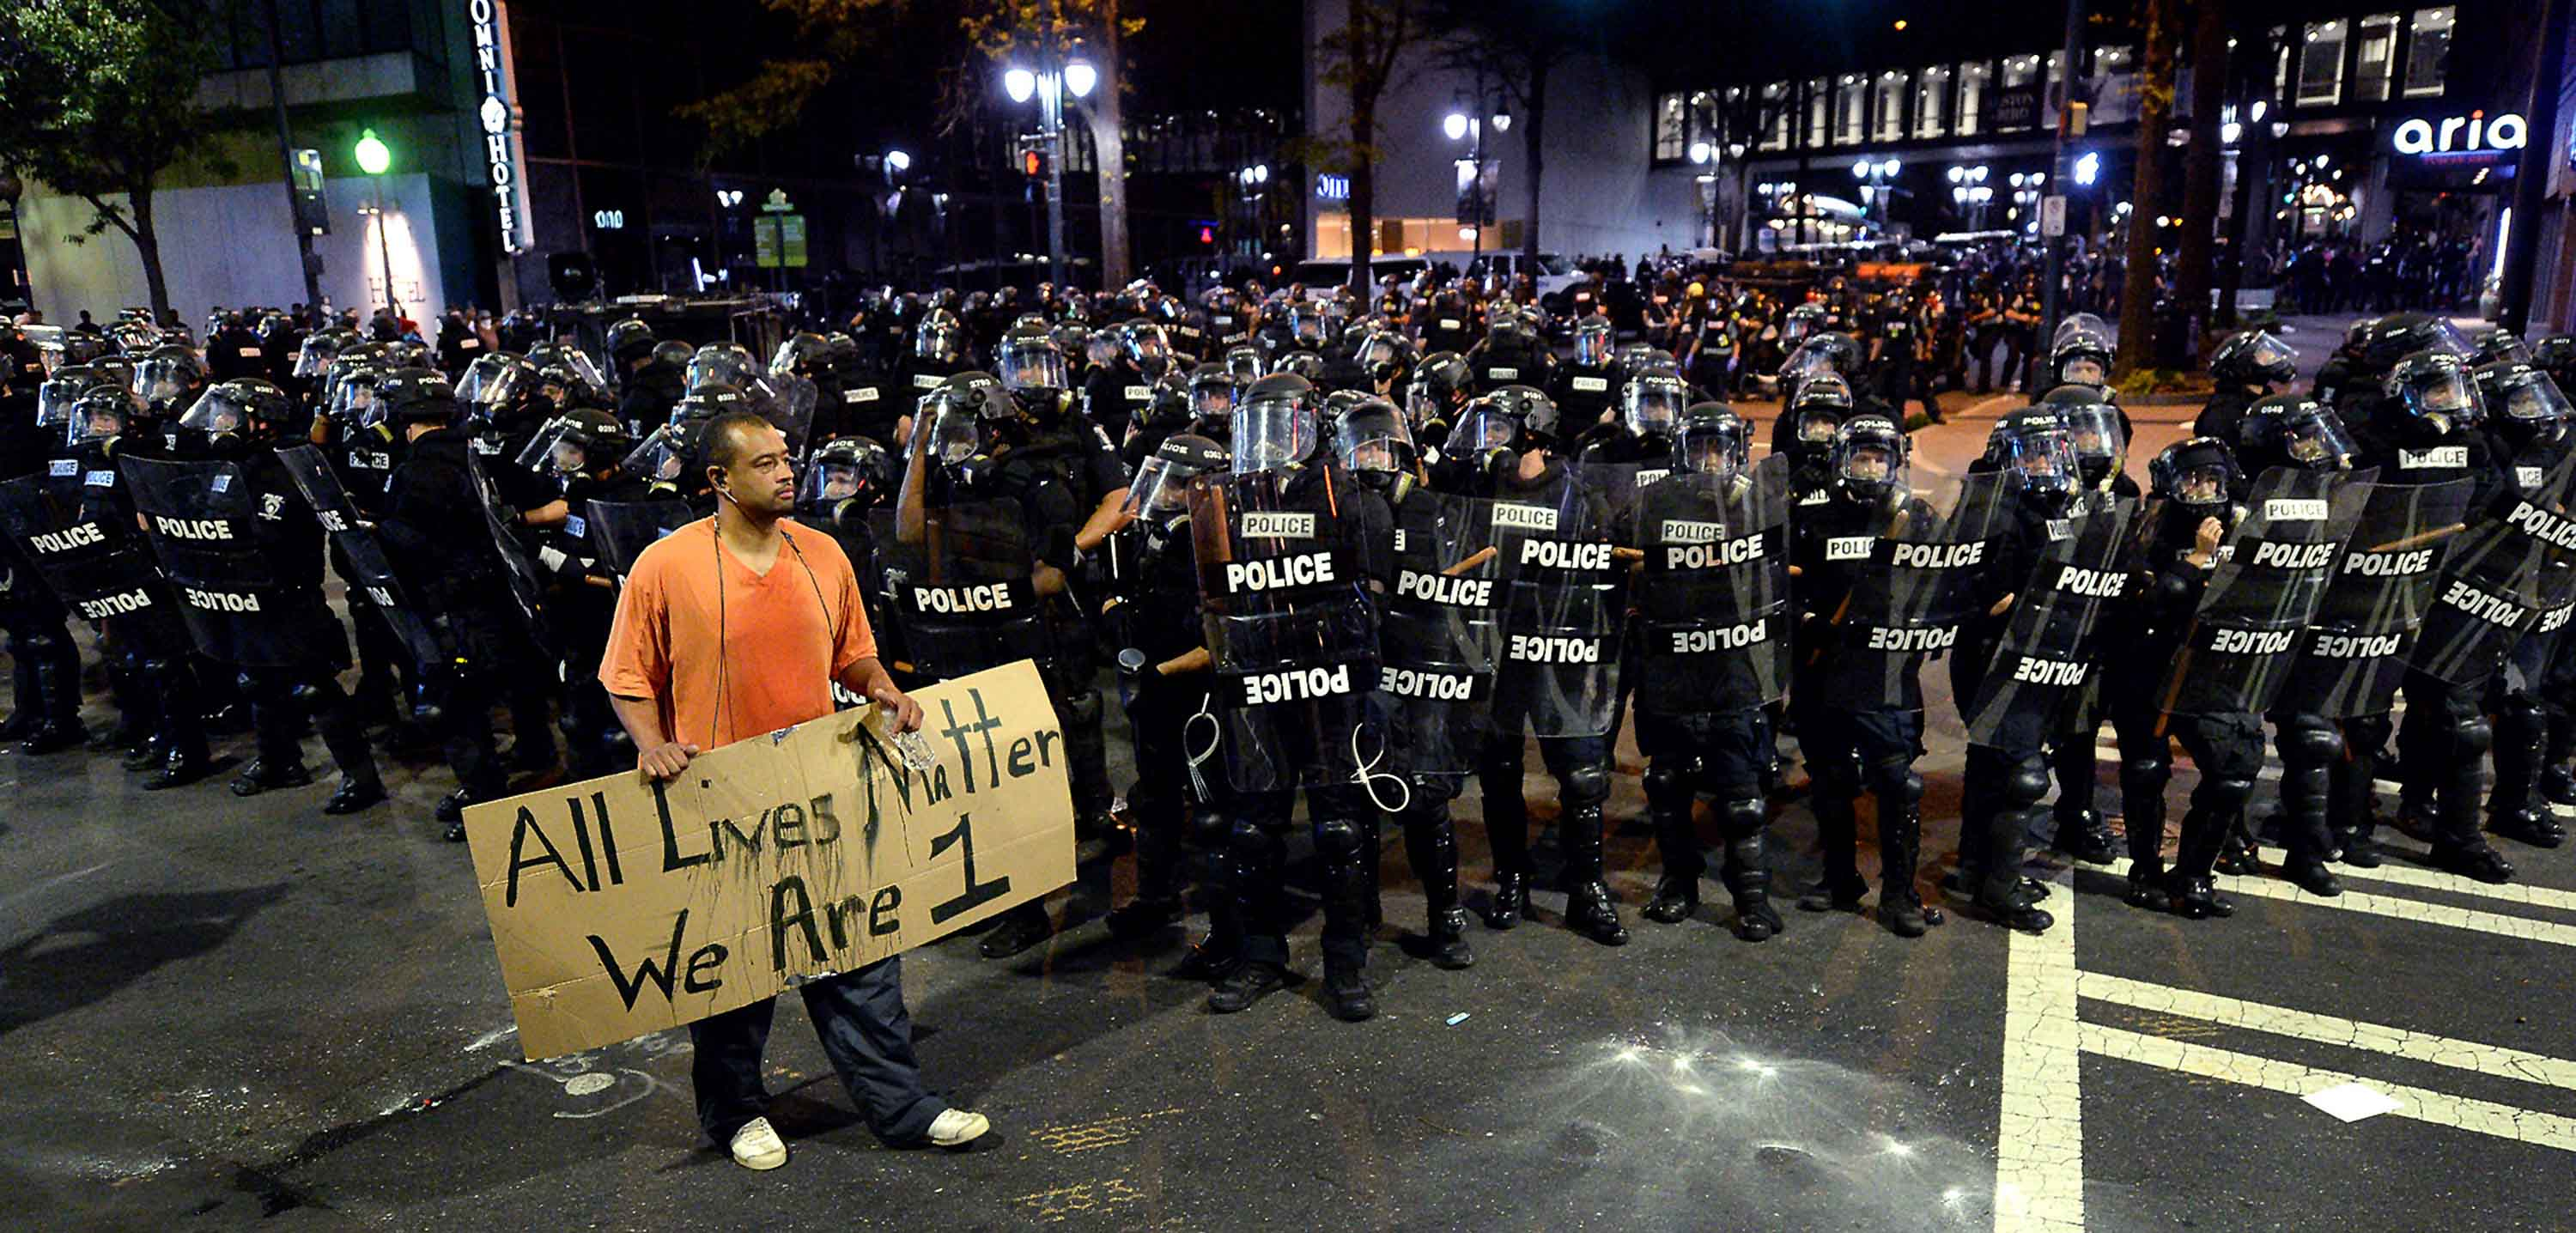 A protestor walks in front of Charlotte officers in riot gear with a sign reading